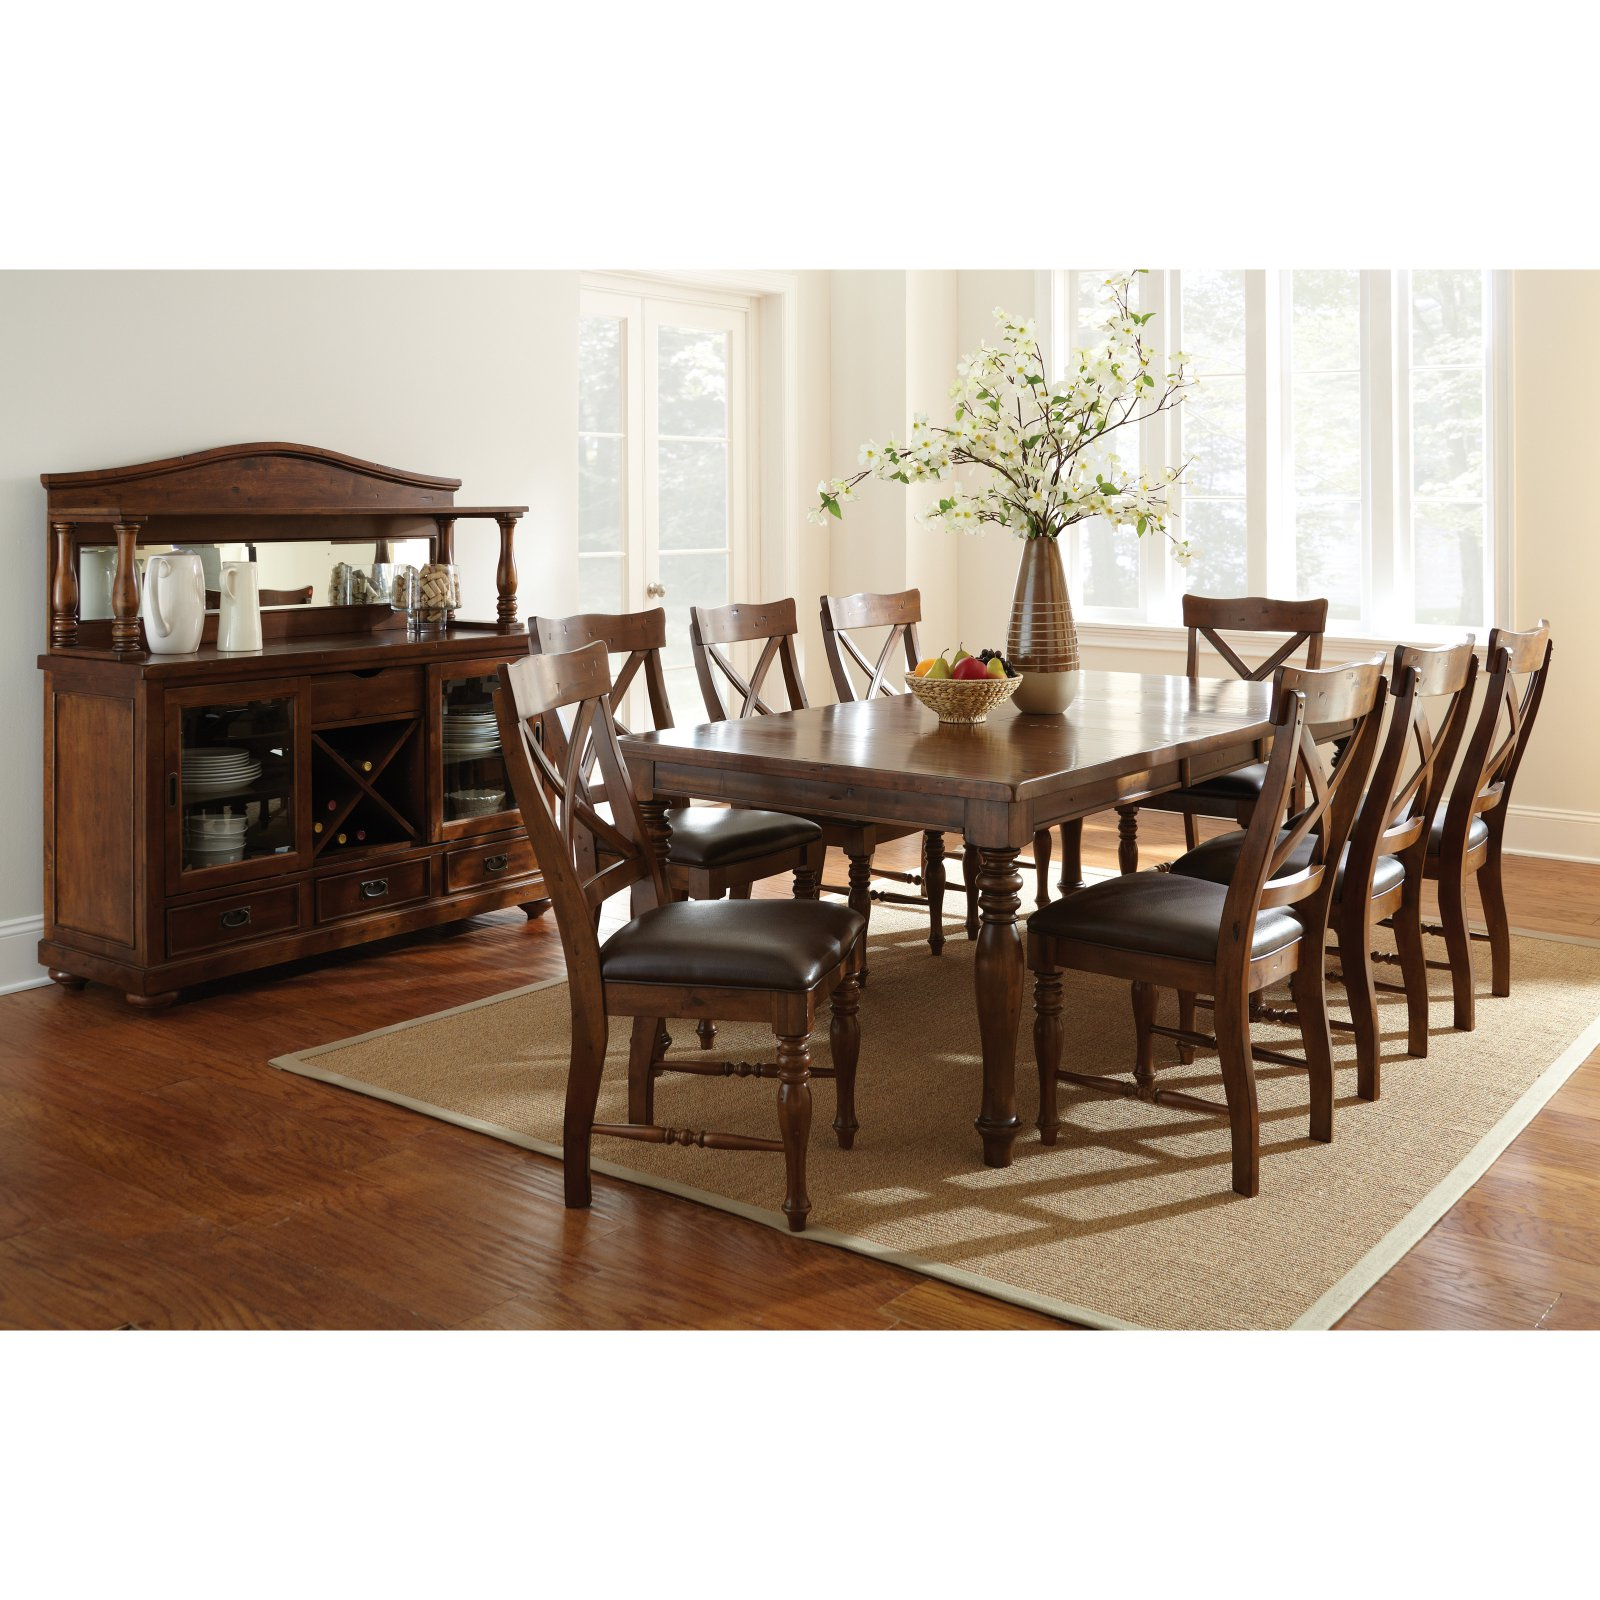 Steve Silver Wyndham Dining Table - Tobacco